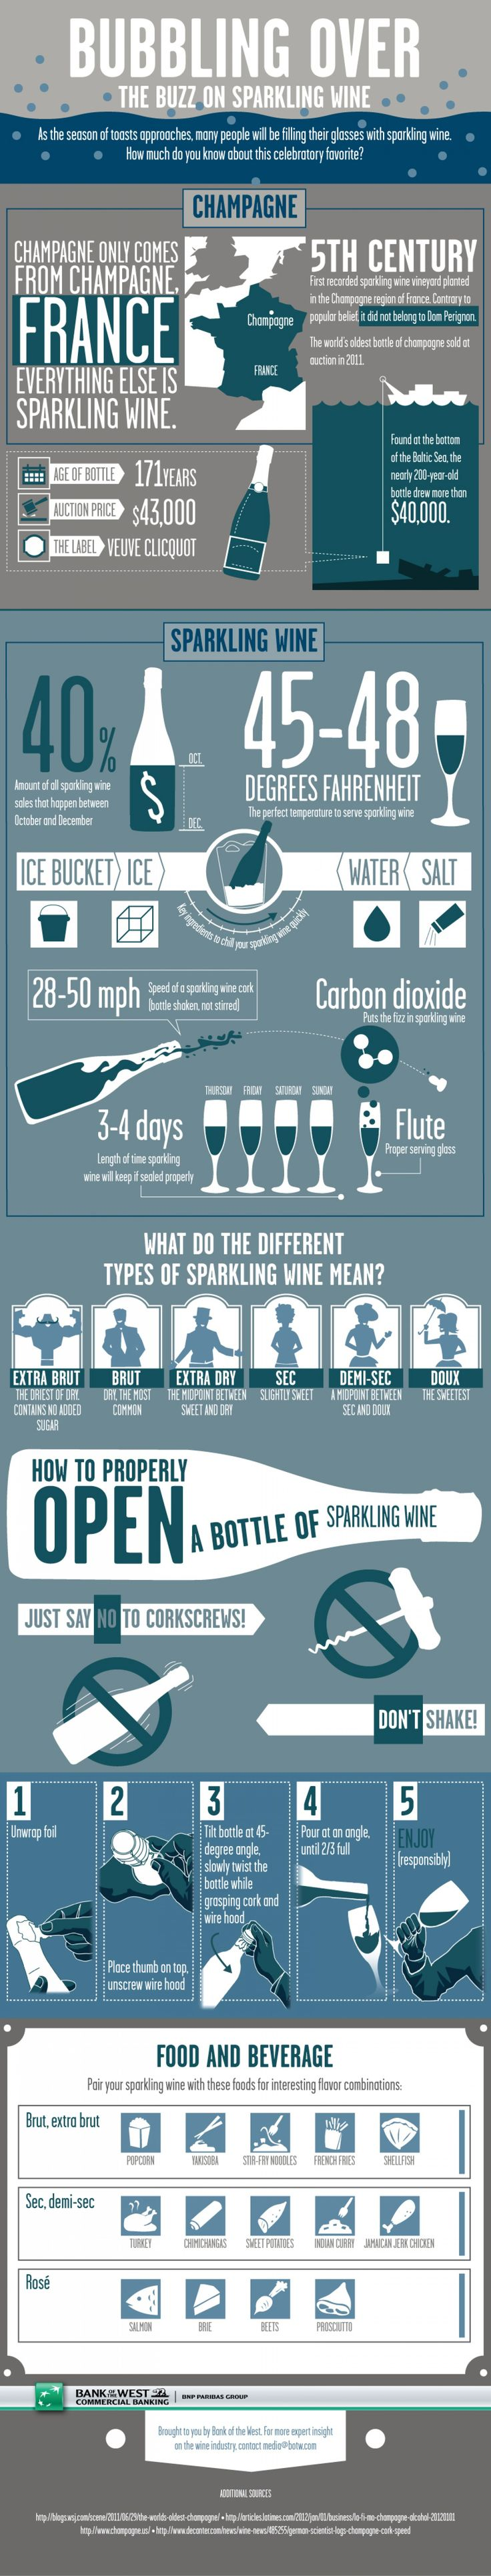 The Buzz on Sparkling Wine Infographic